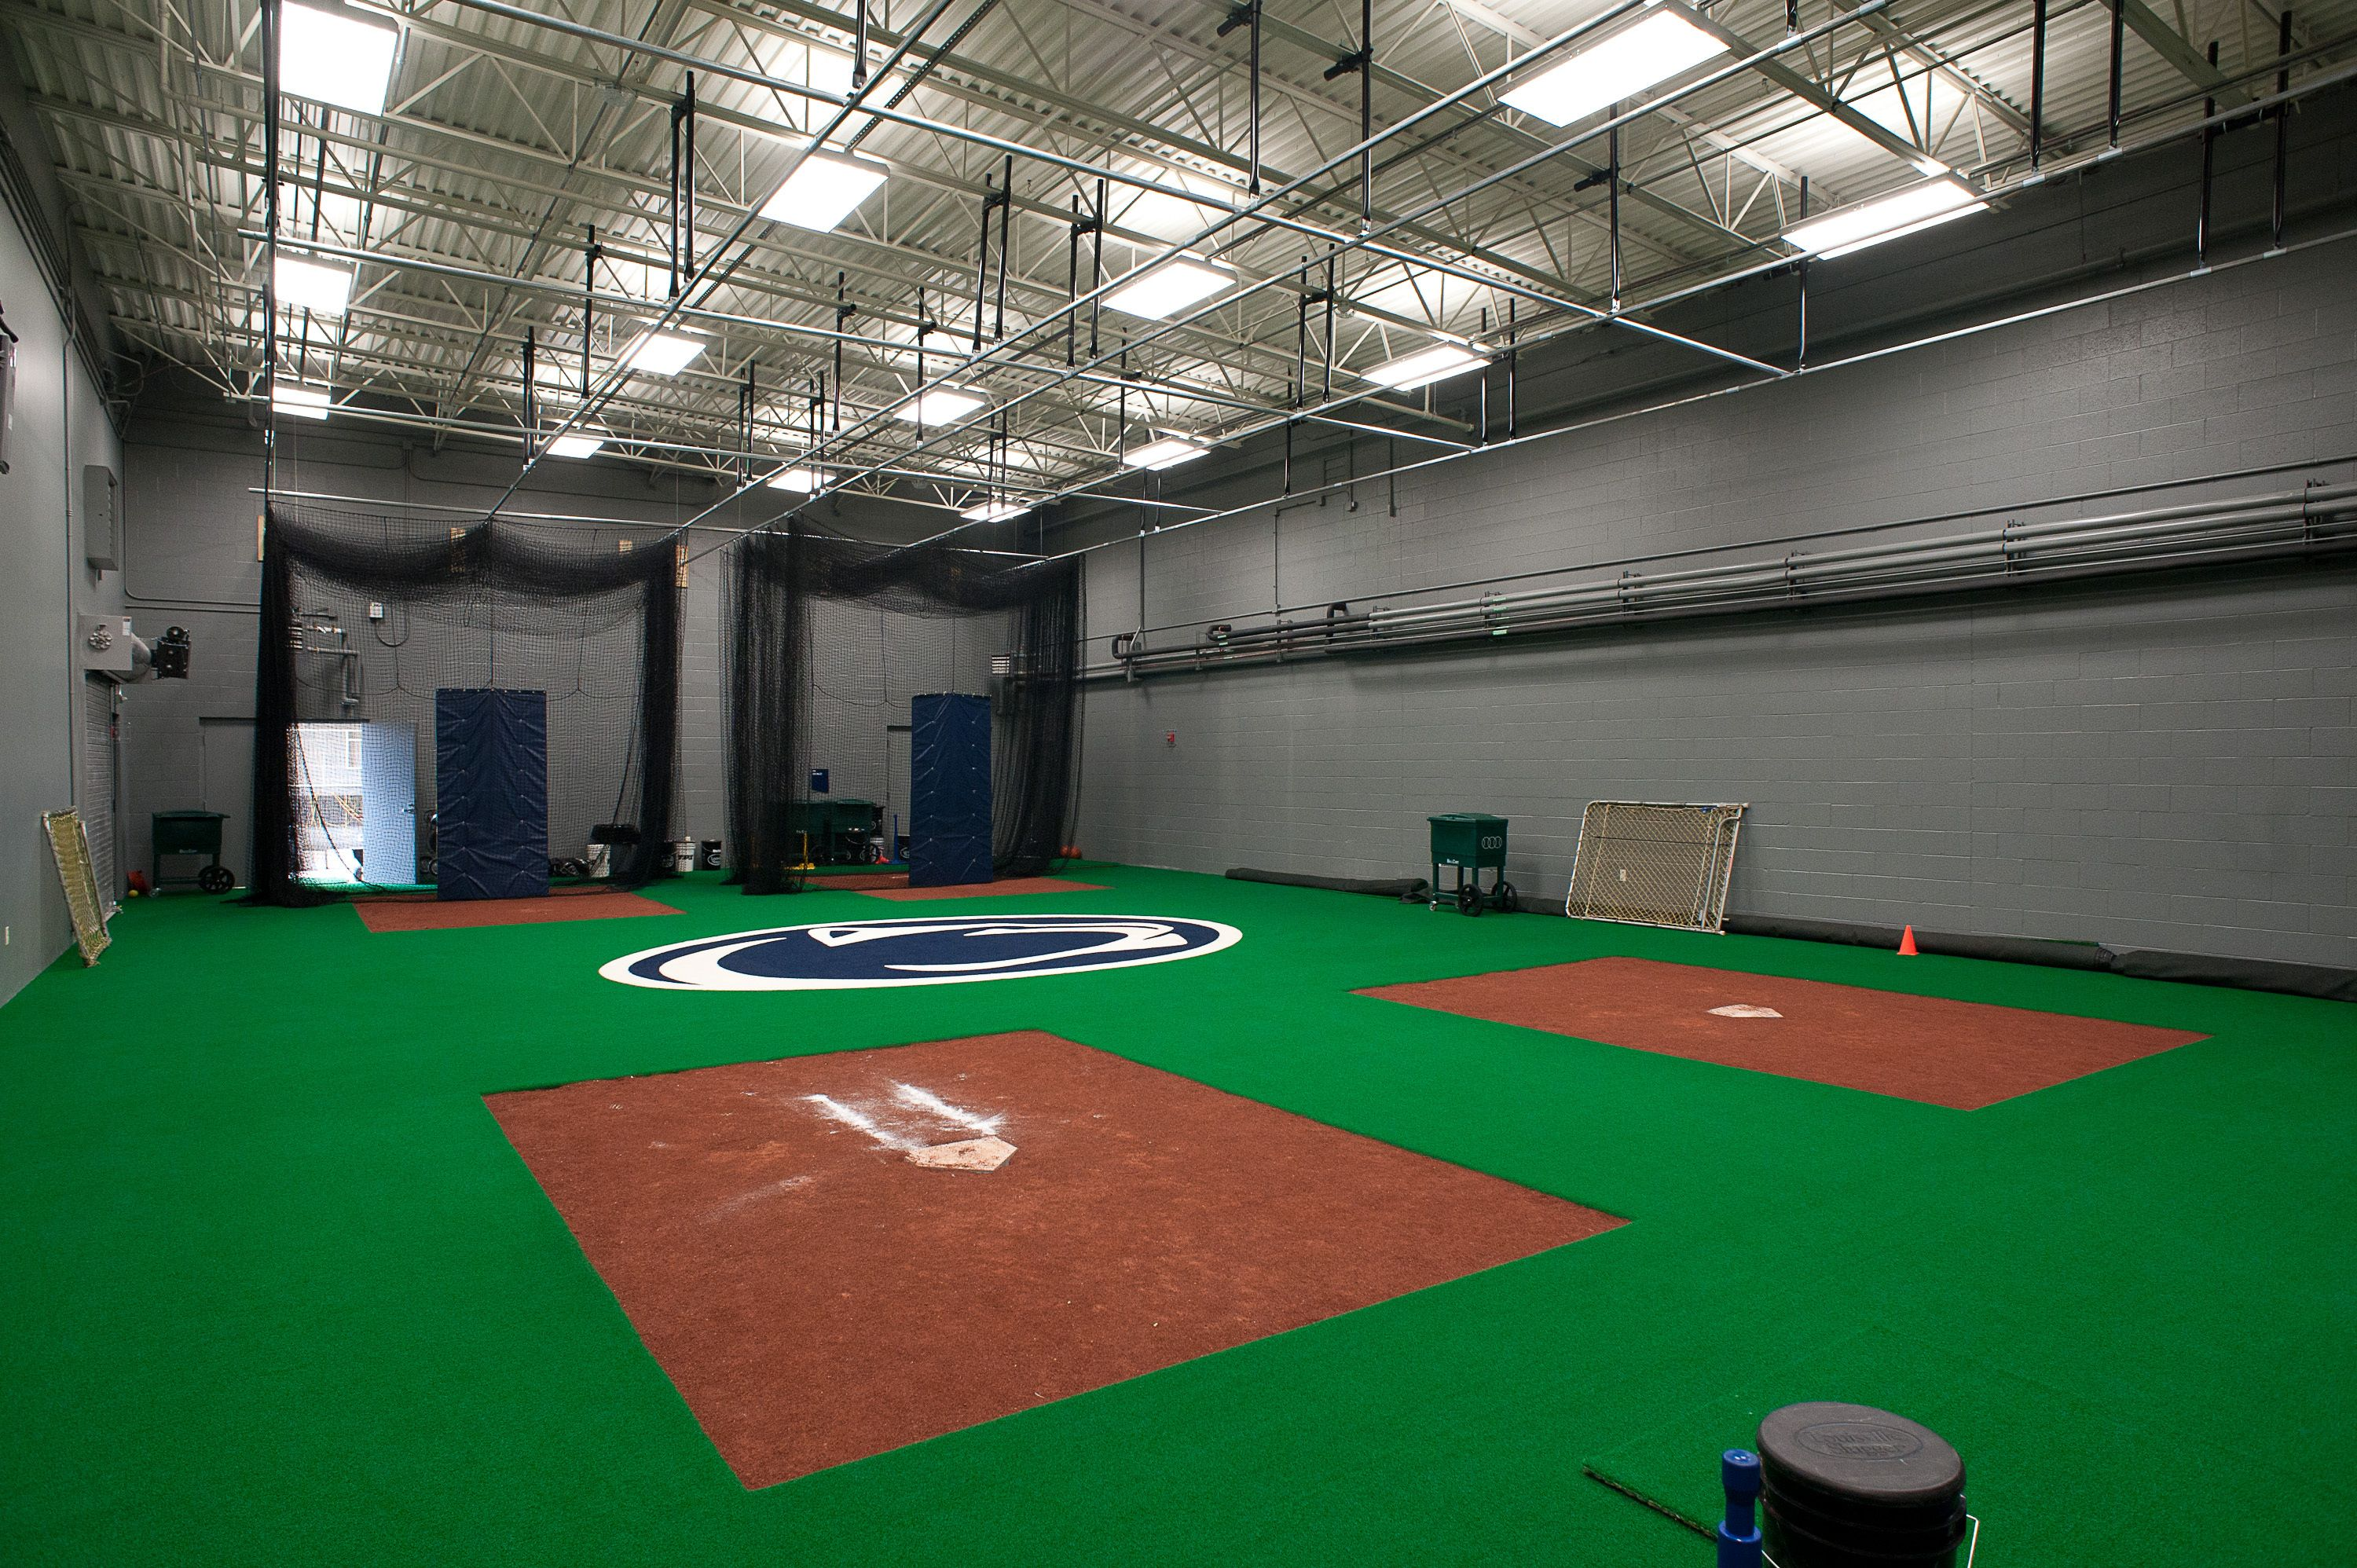 Amazing Indoor Baseball Facility By Kodiak Sports Batting Cages Indoorturf Syntheticturf Brewers